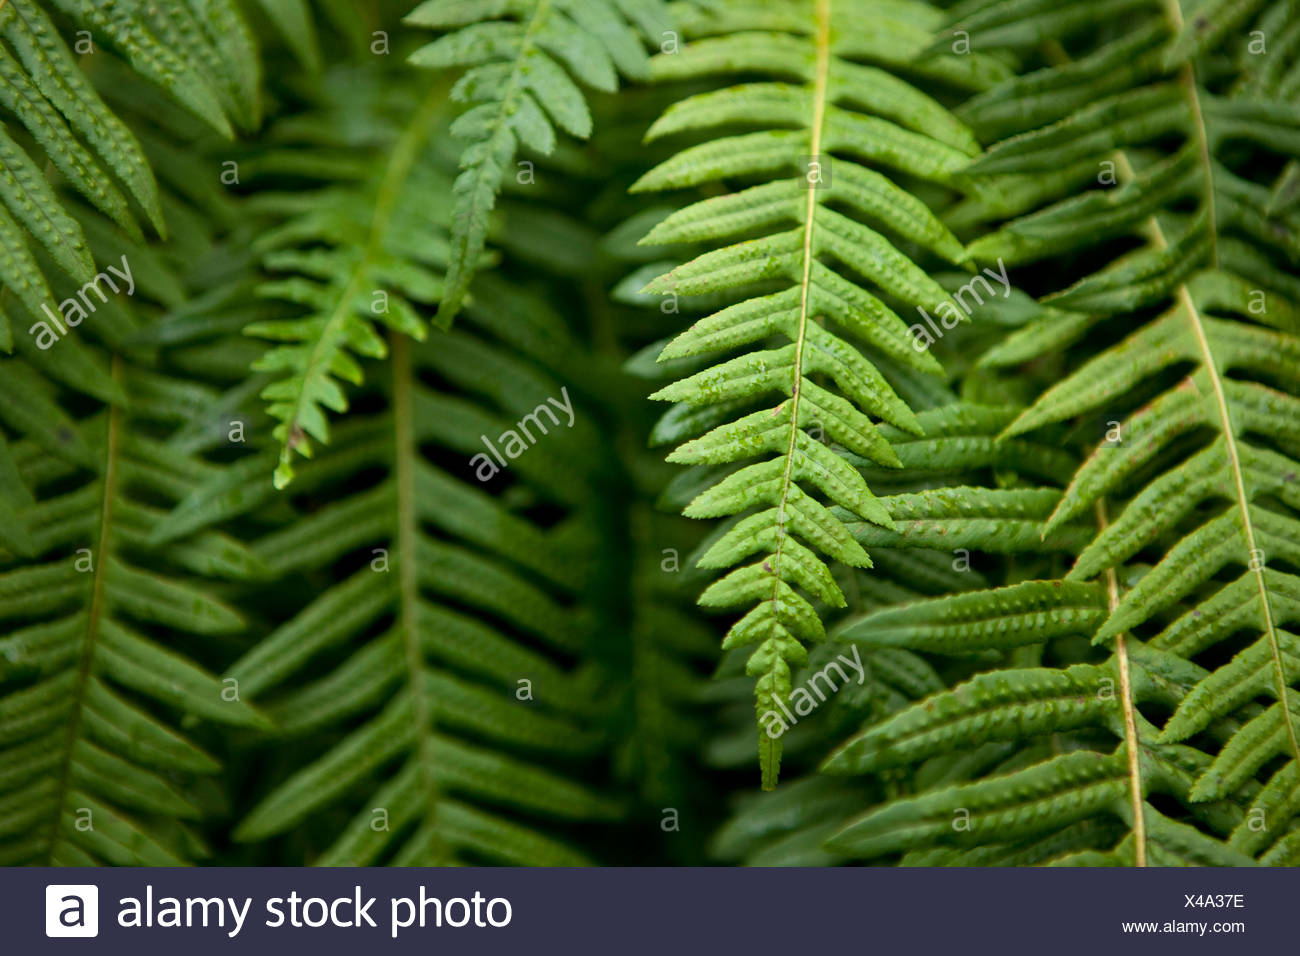 A group of green ferns. - Stock Image